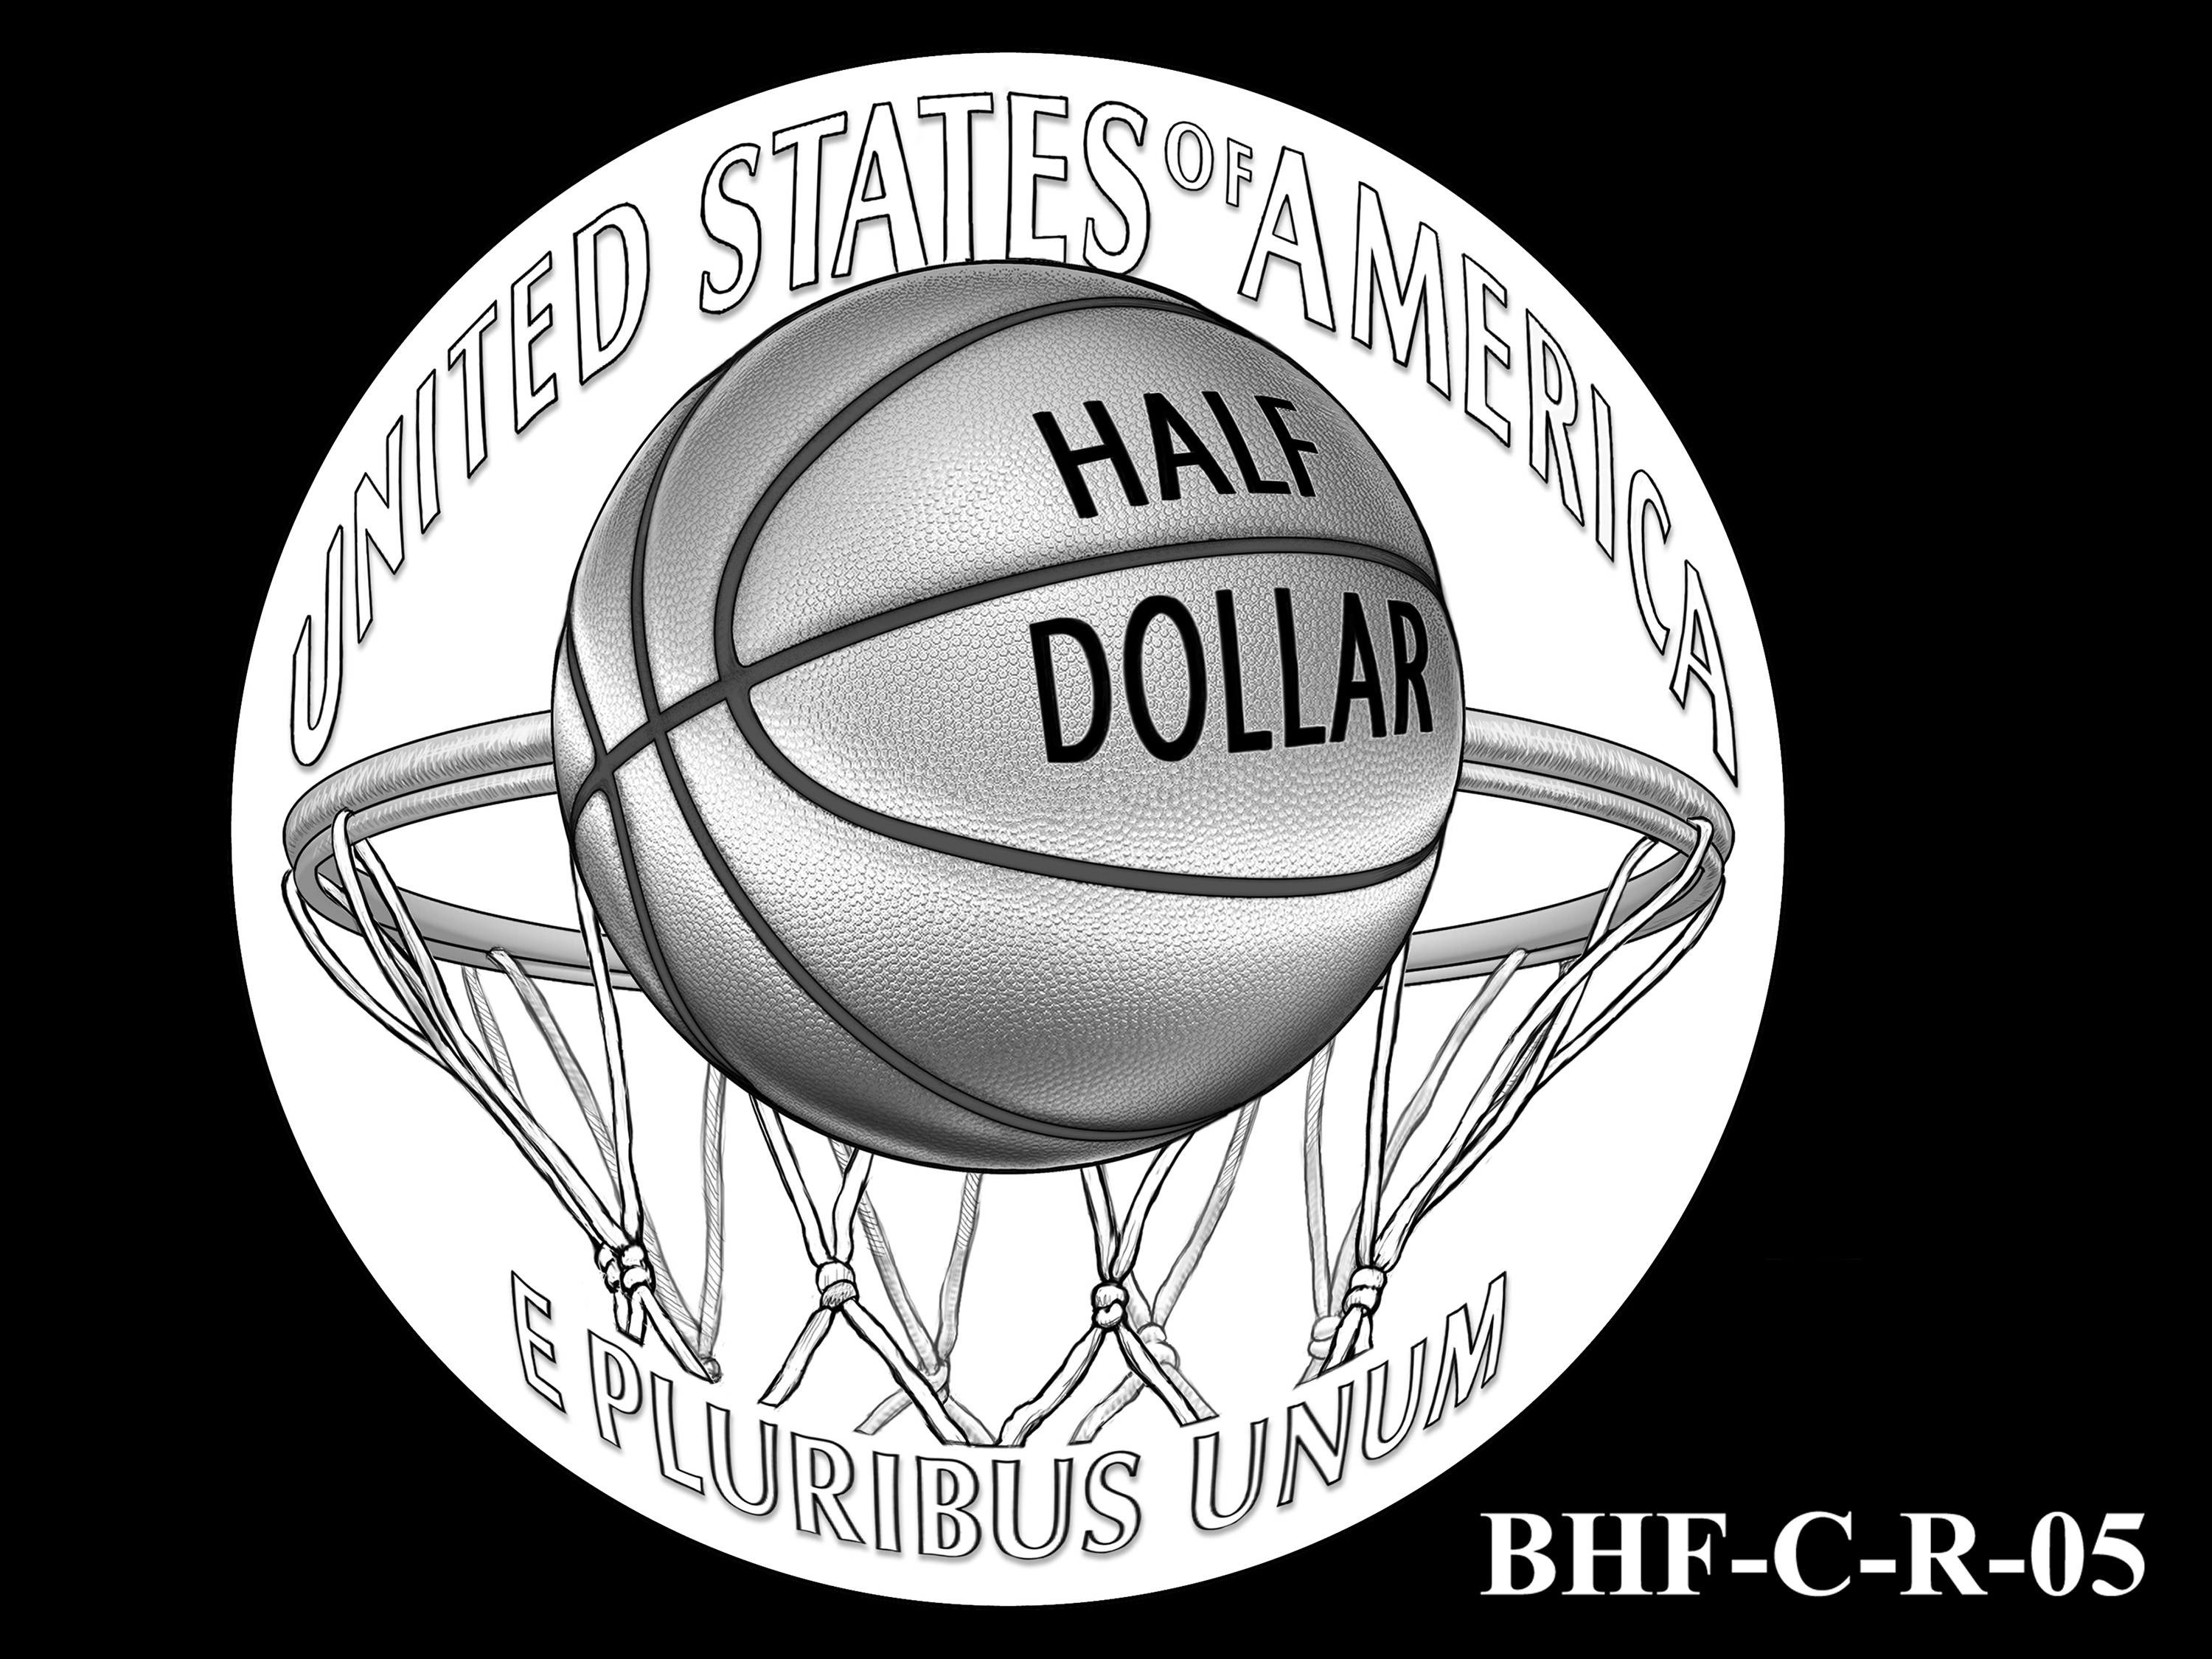 BHF-C-R-05 -- 2020 Basketball Hall of Fame Commemorative Coin Program - Clad Reverse